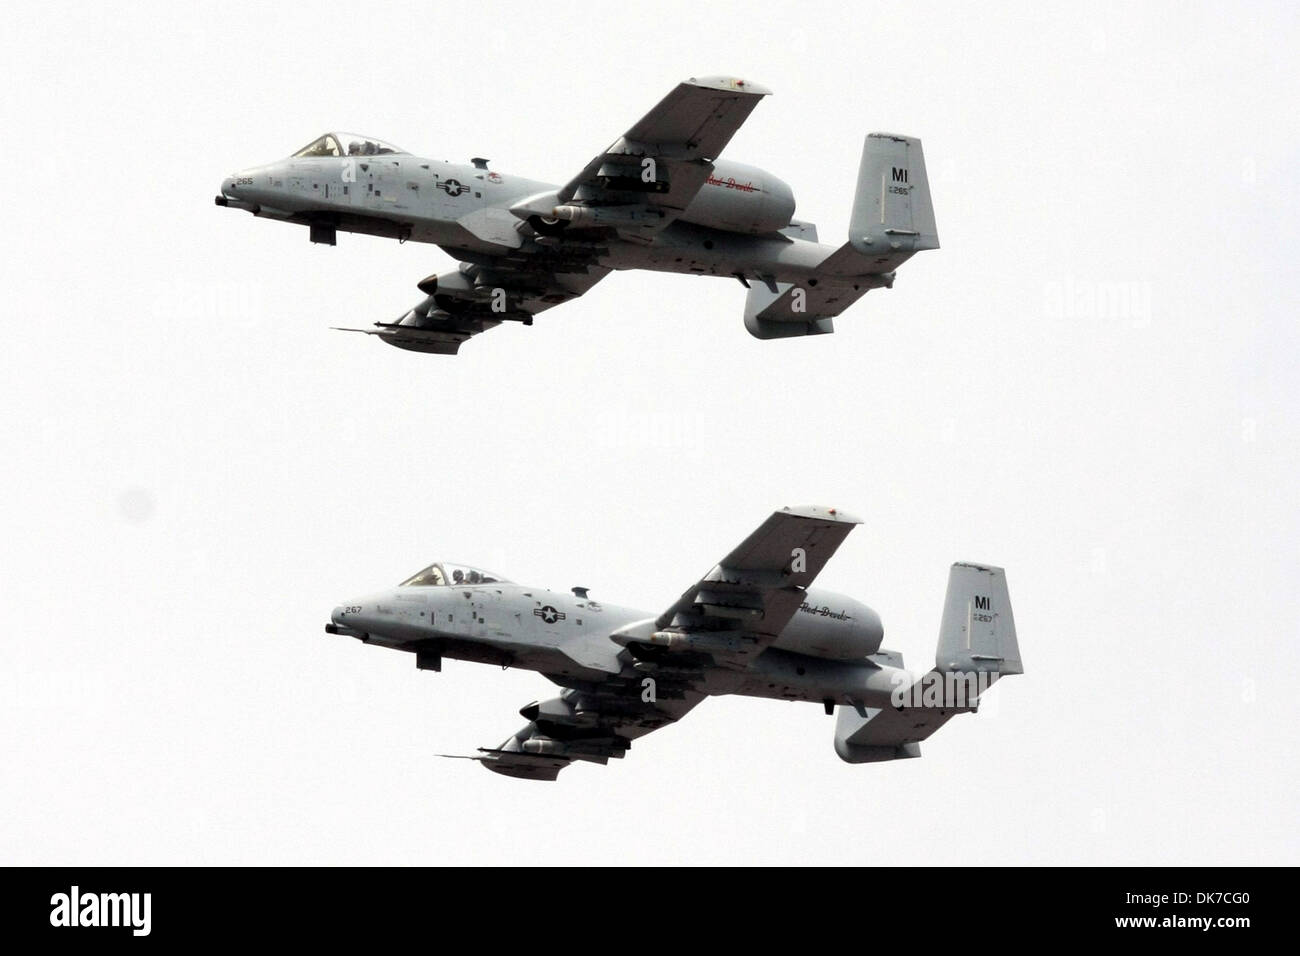 June 19, 2011 - Brooklyn, Michigan, U.S - A pair of A-10 ''Warthogs'' does a flyover prior to the race. (Credit Image: © Alan Ashley/Southcreek Global/ZUMAPRESS.com) - Stock Image